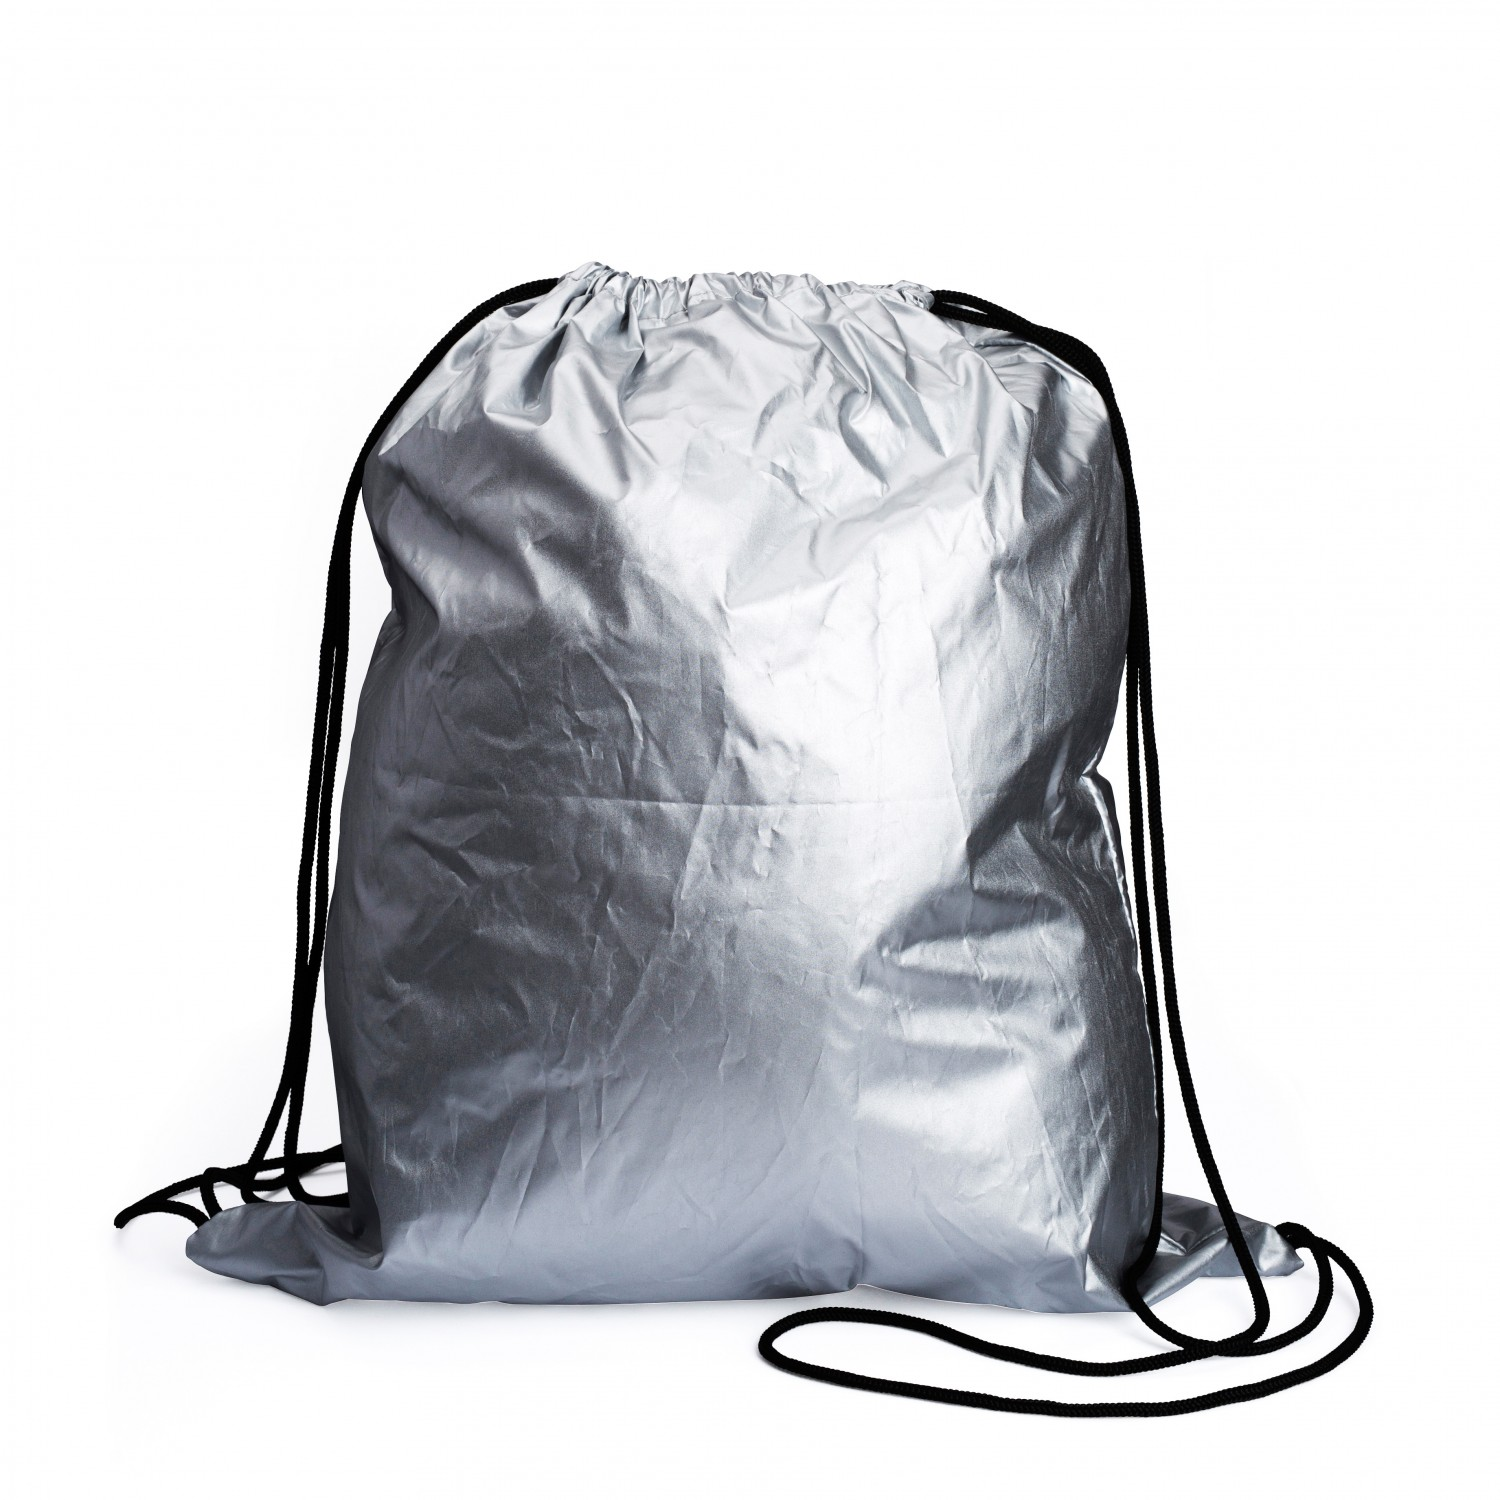 personalized promotional eco friendly  Backpack Customized silver metallic drawstring bags